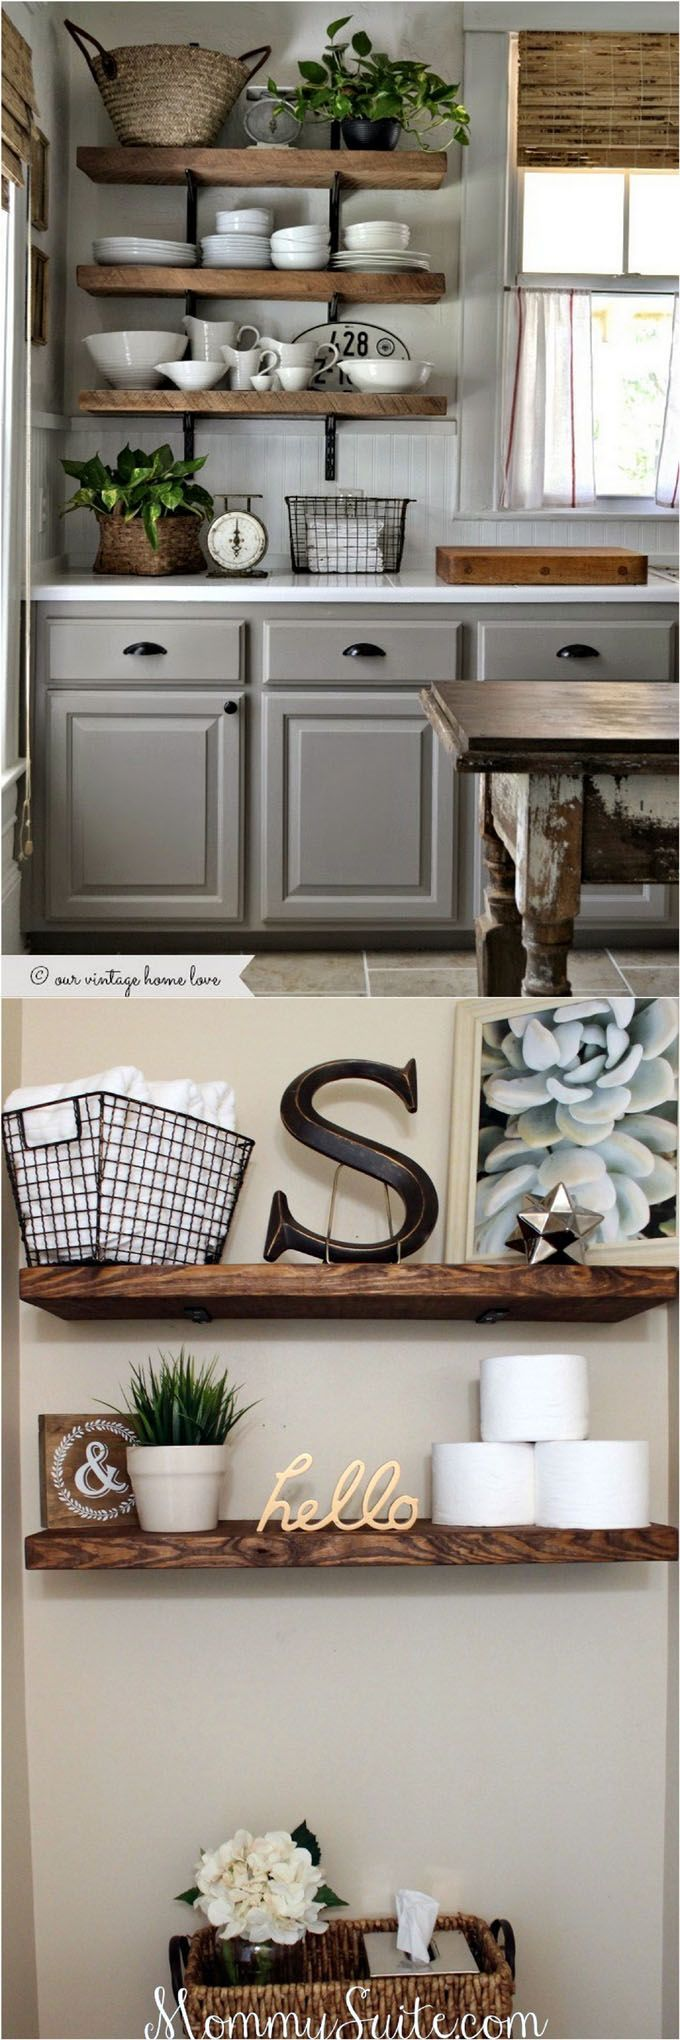 16 easy tutorials on building beautiful floating shelves and wall shelves for your home! Check out all the gorgeous brackets, supports, finishes and design inspirations!